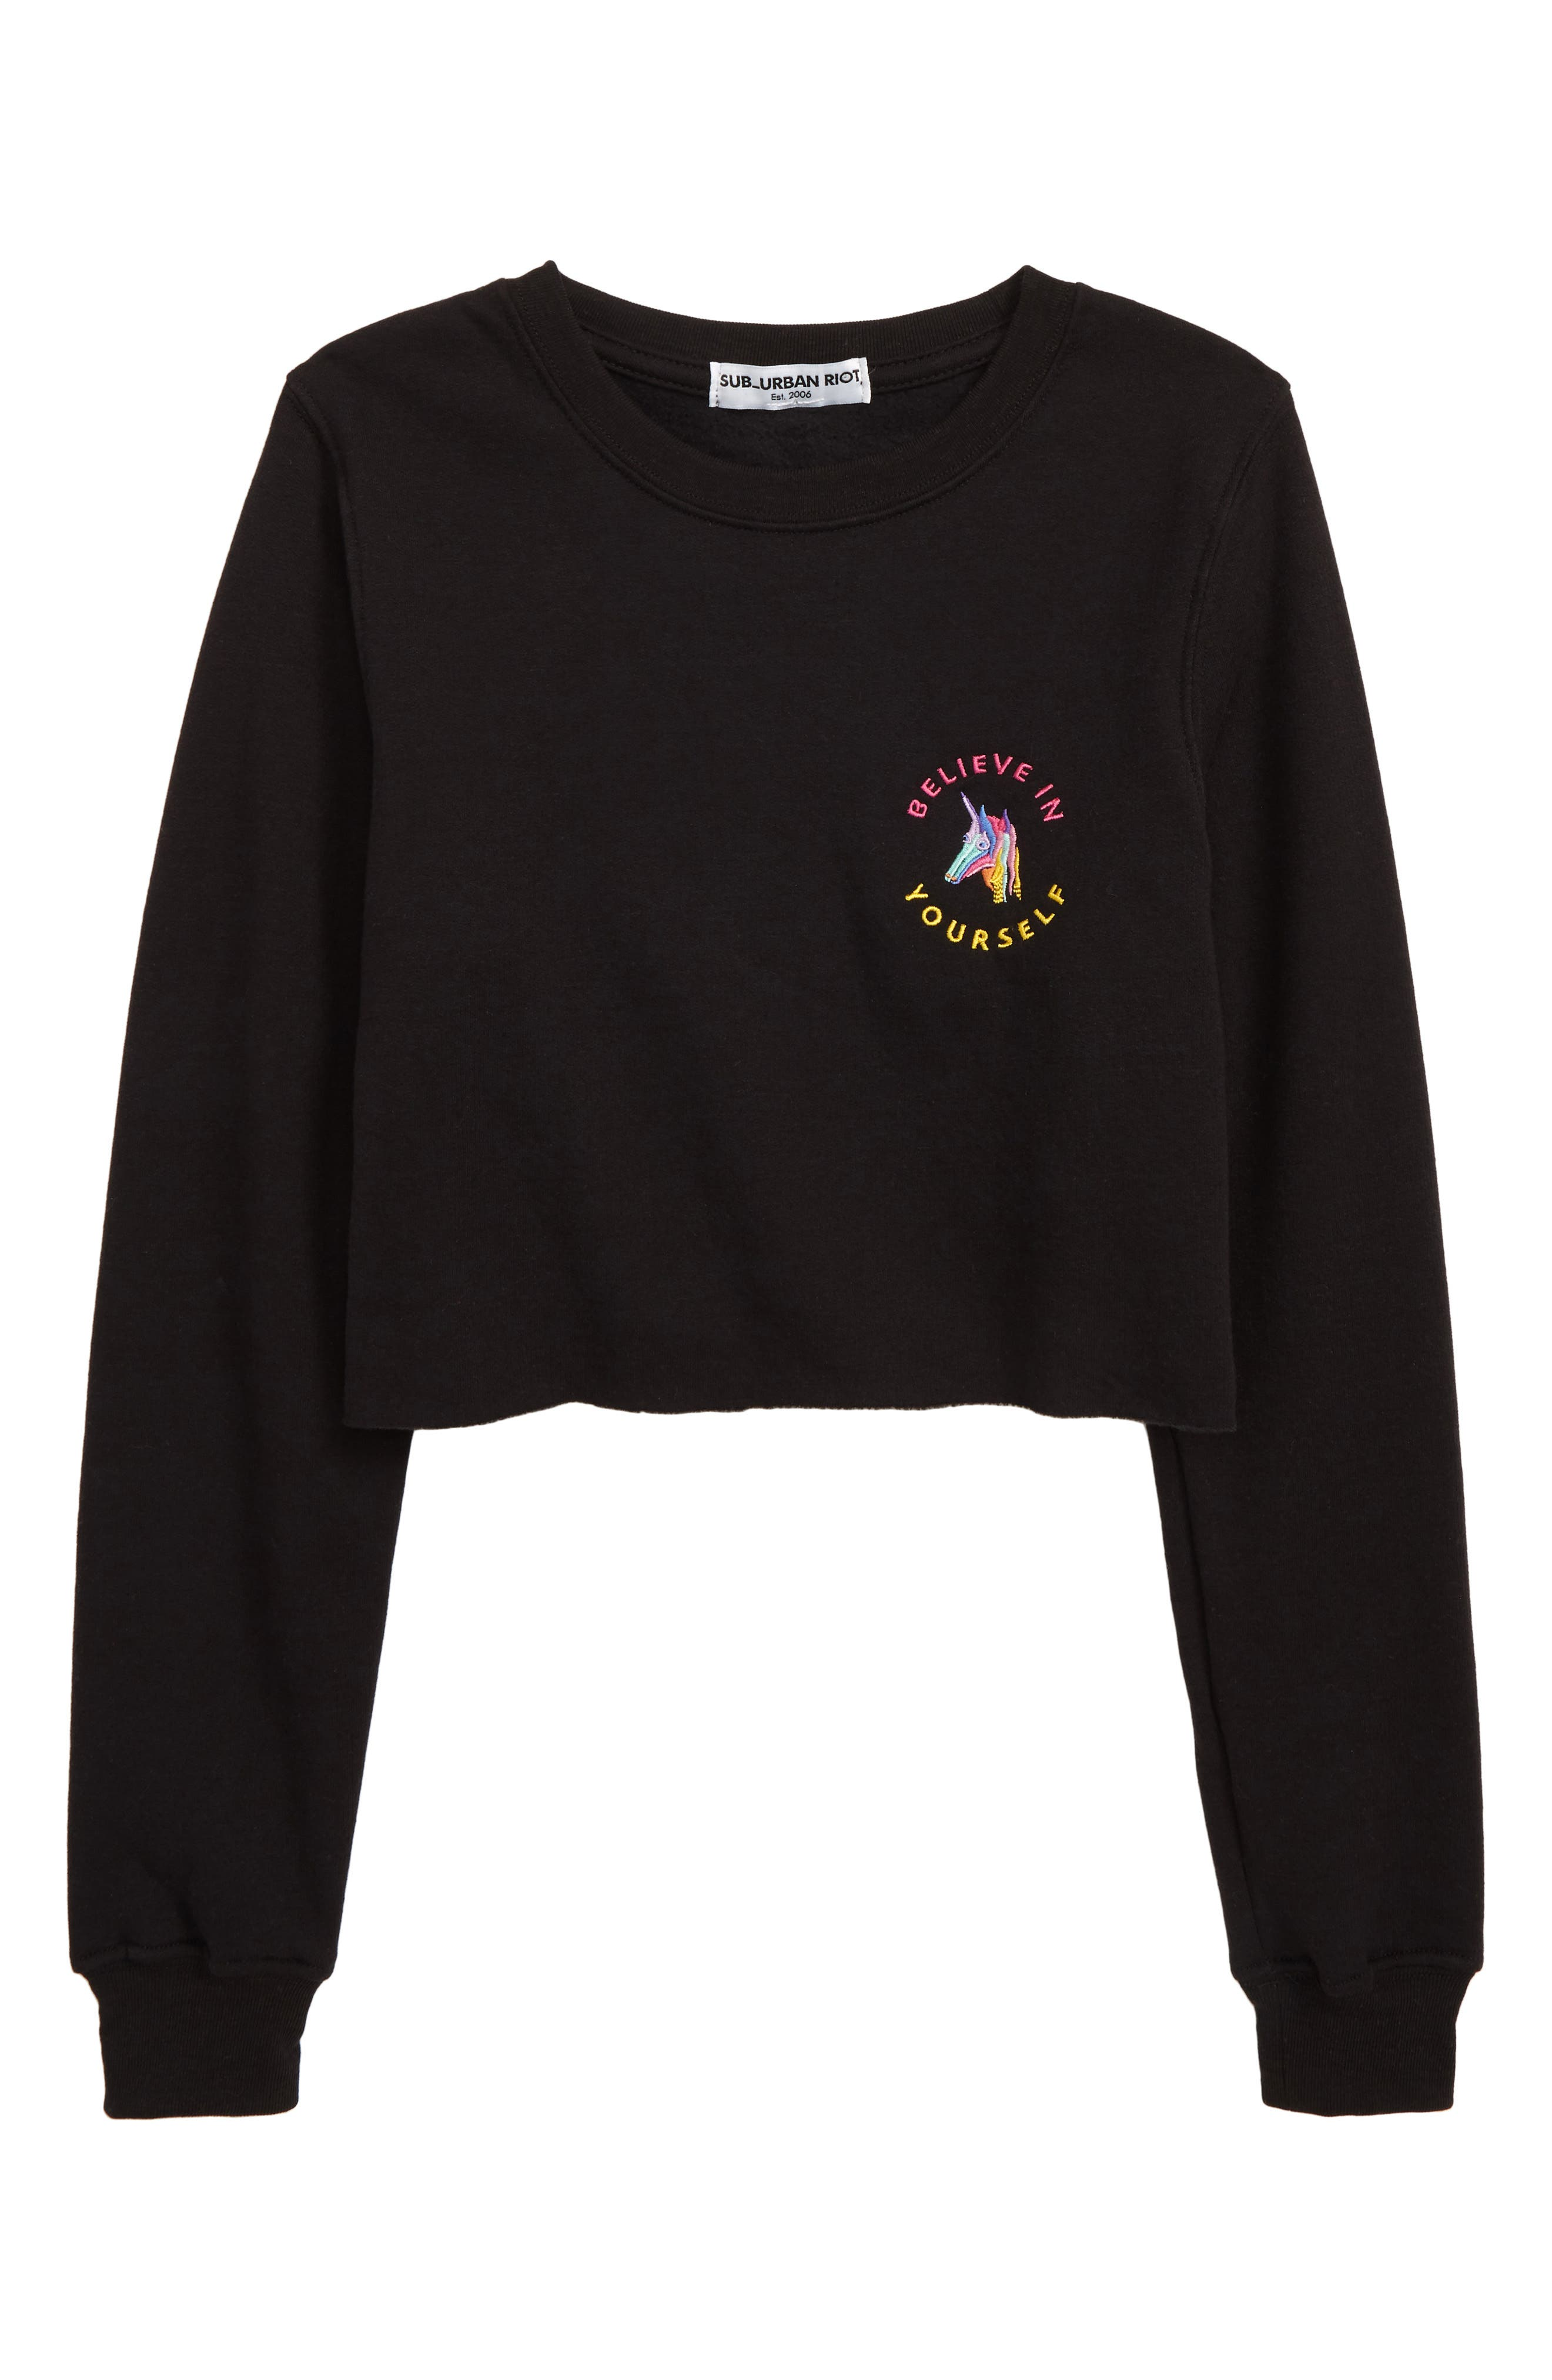 SUB_URBAN RIOT, Believe in Yourself Sweatshirt, Main thumbnail 1, color, BLACK